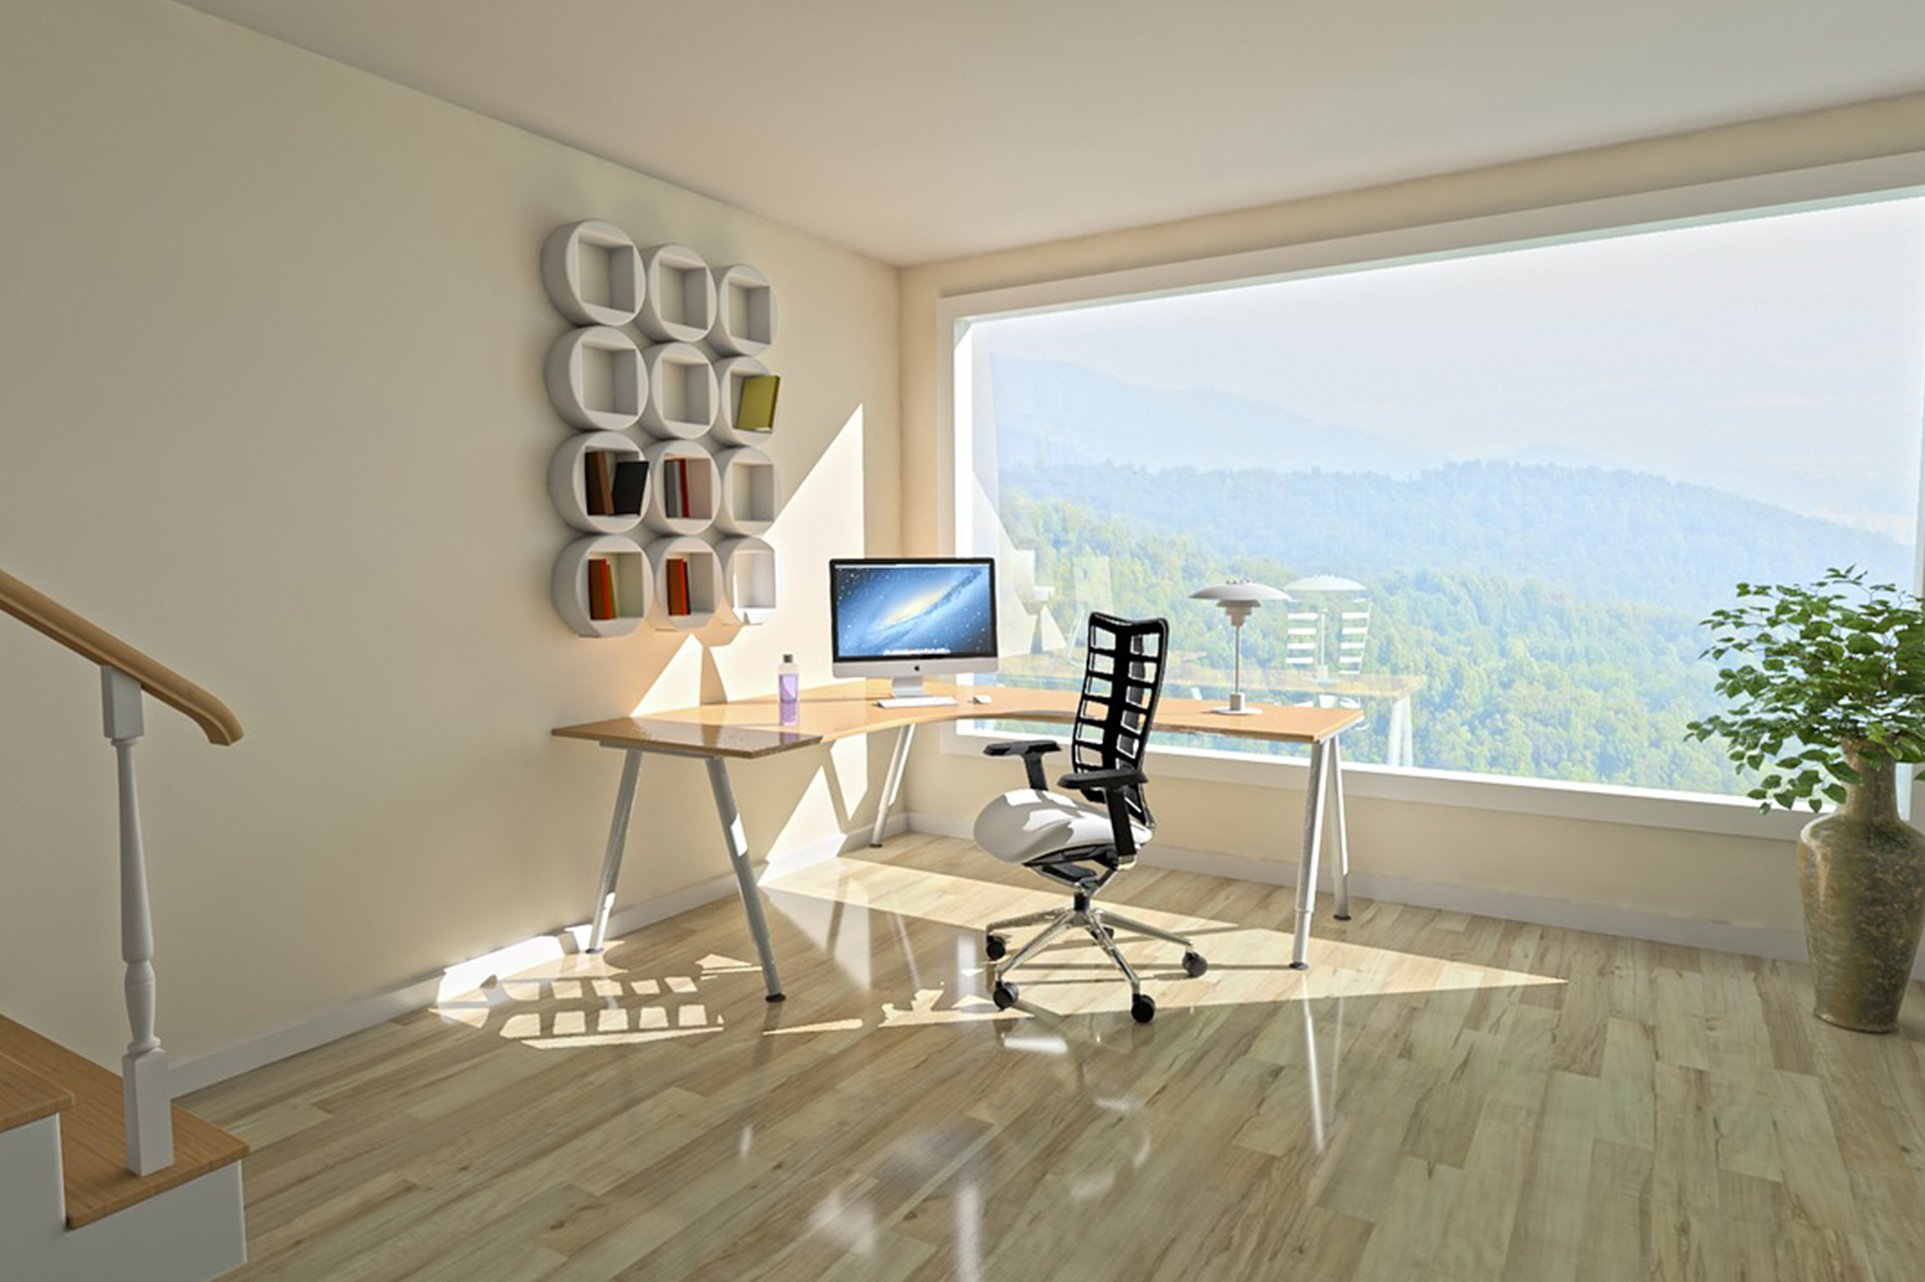 Home office - everything you need